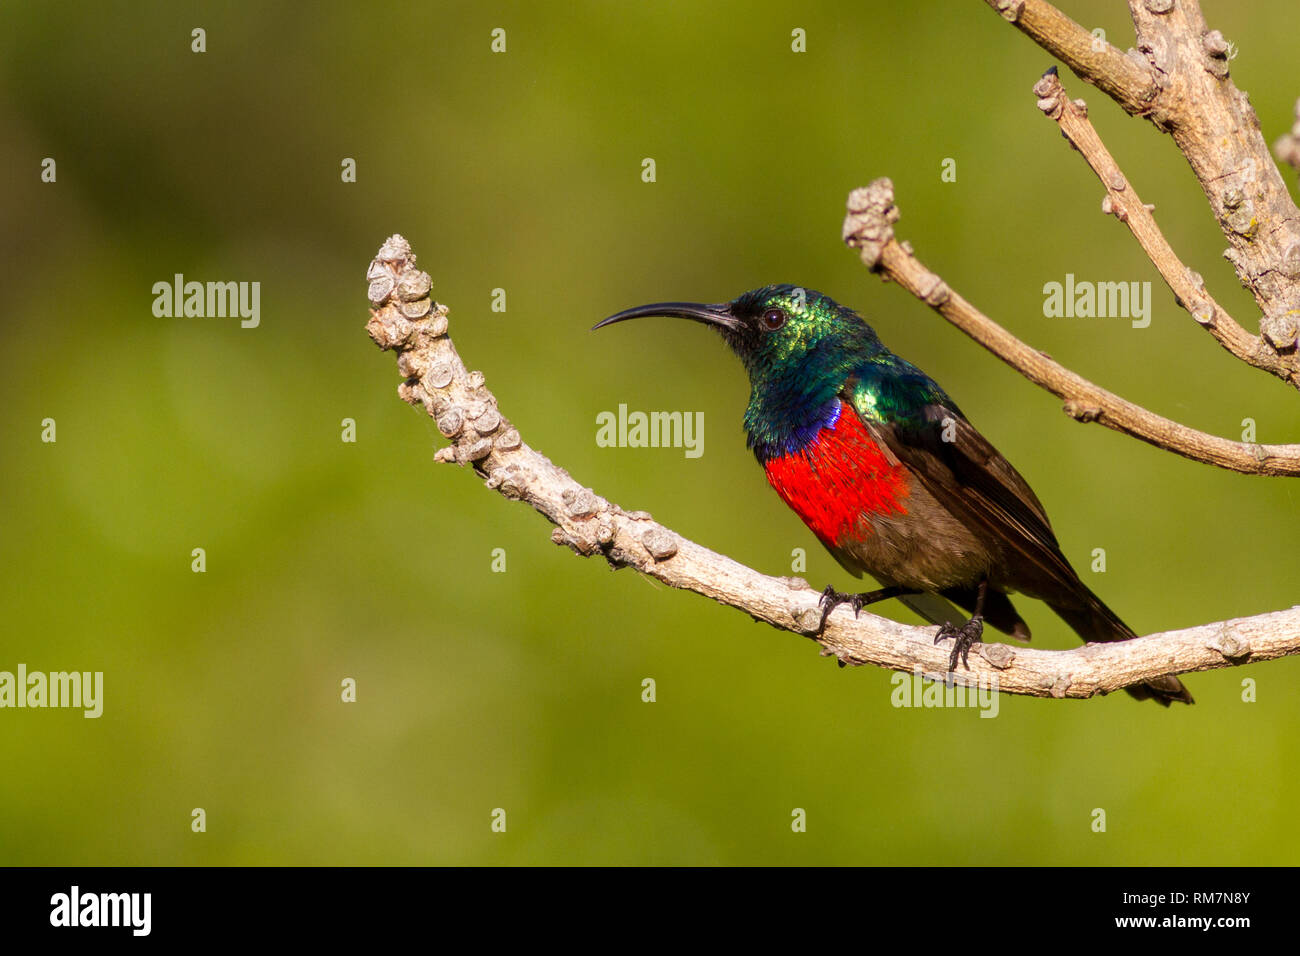 Greater double-collared sunbird (Cinnyris afra) side profile, perched in a tree, South Africa - Stock Image